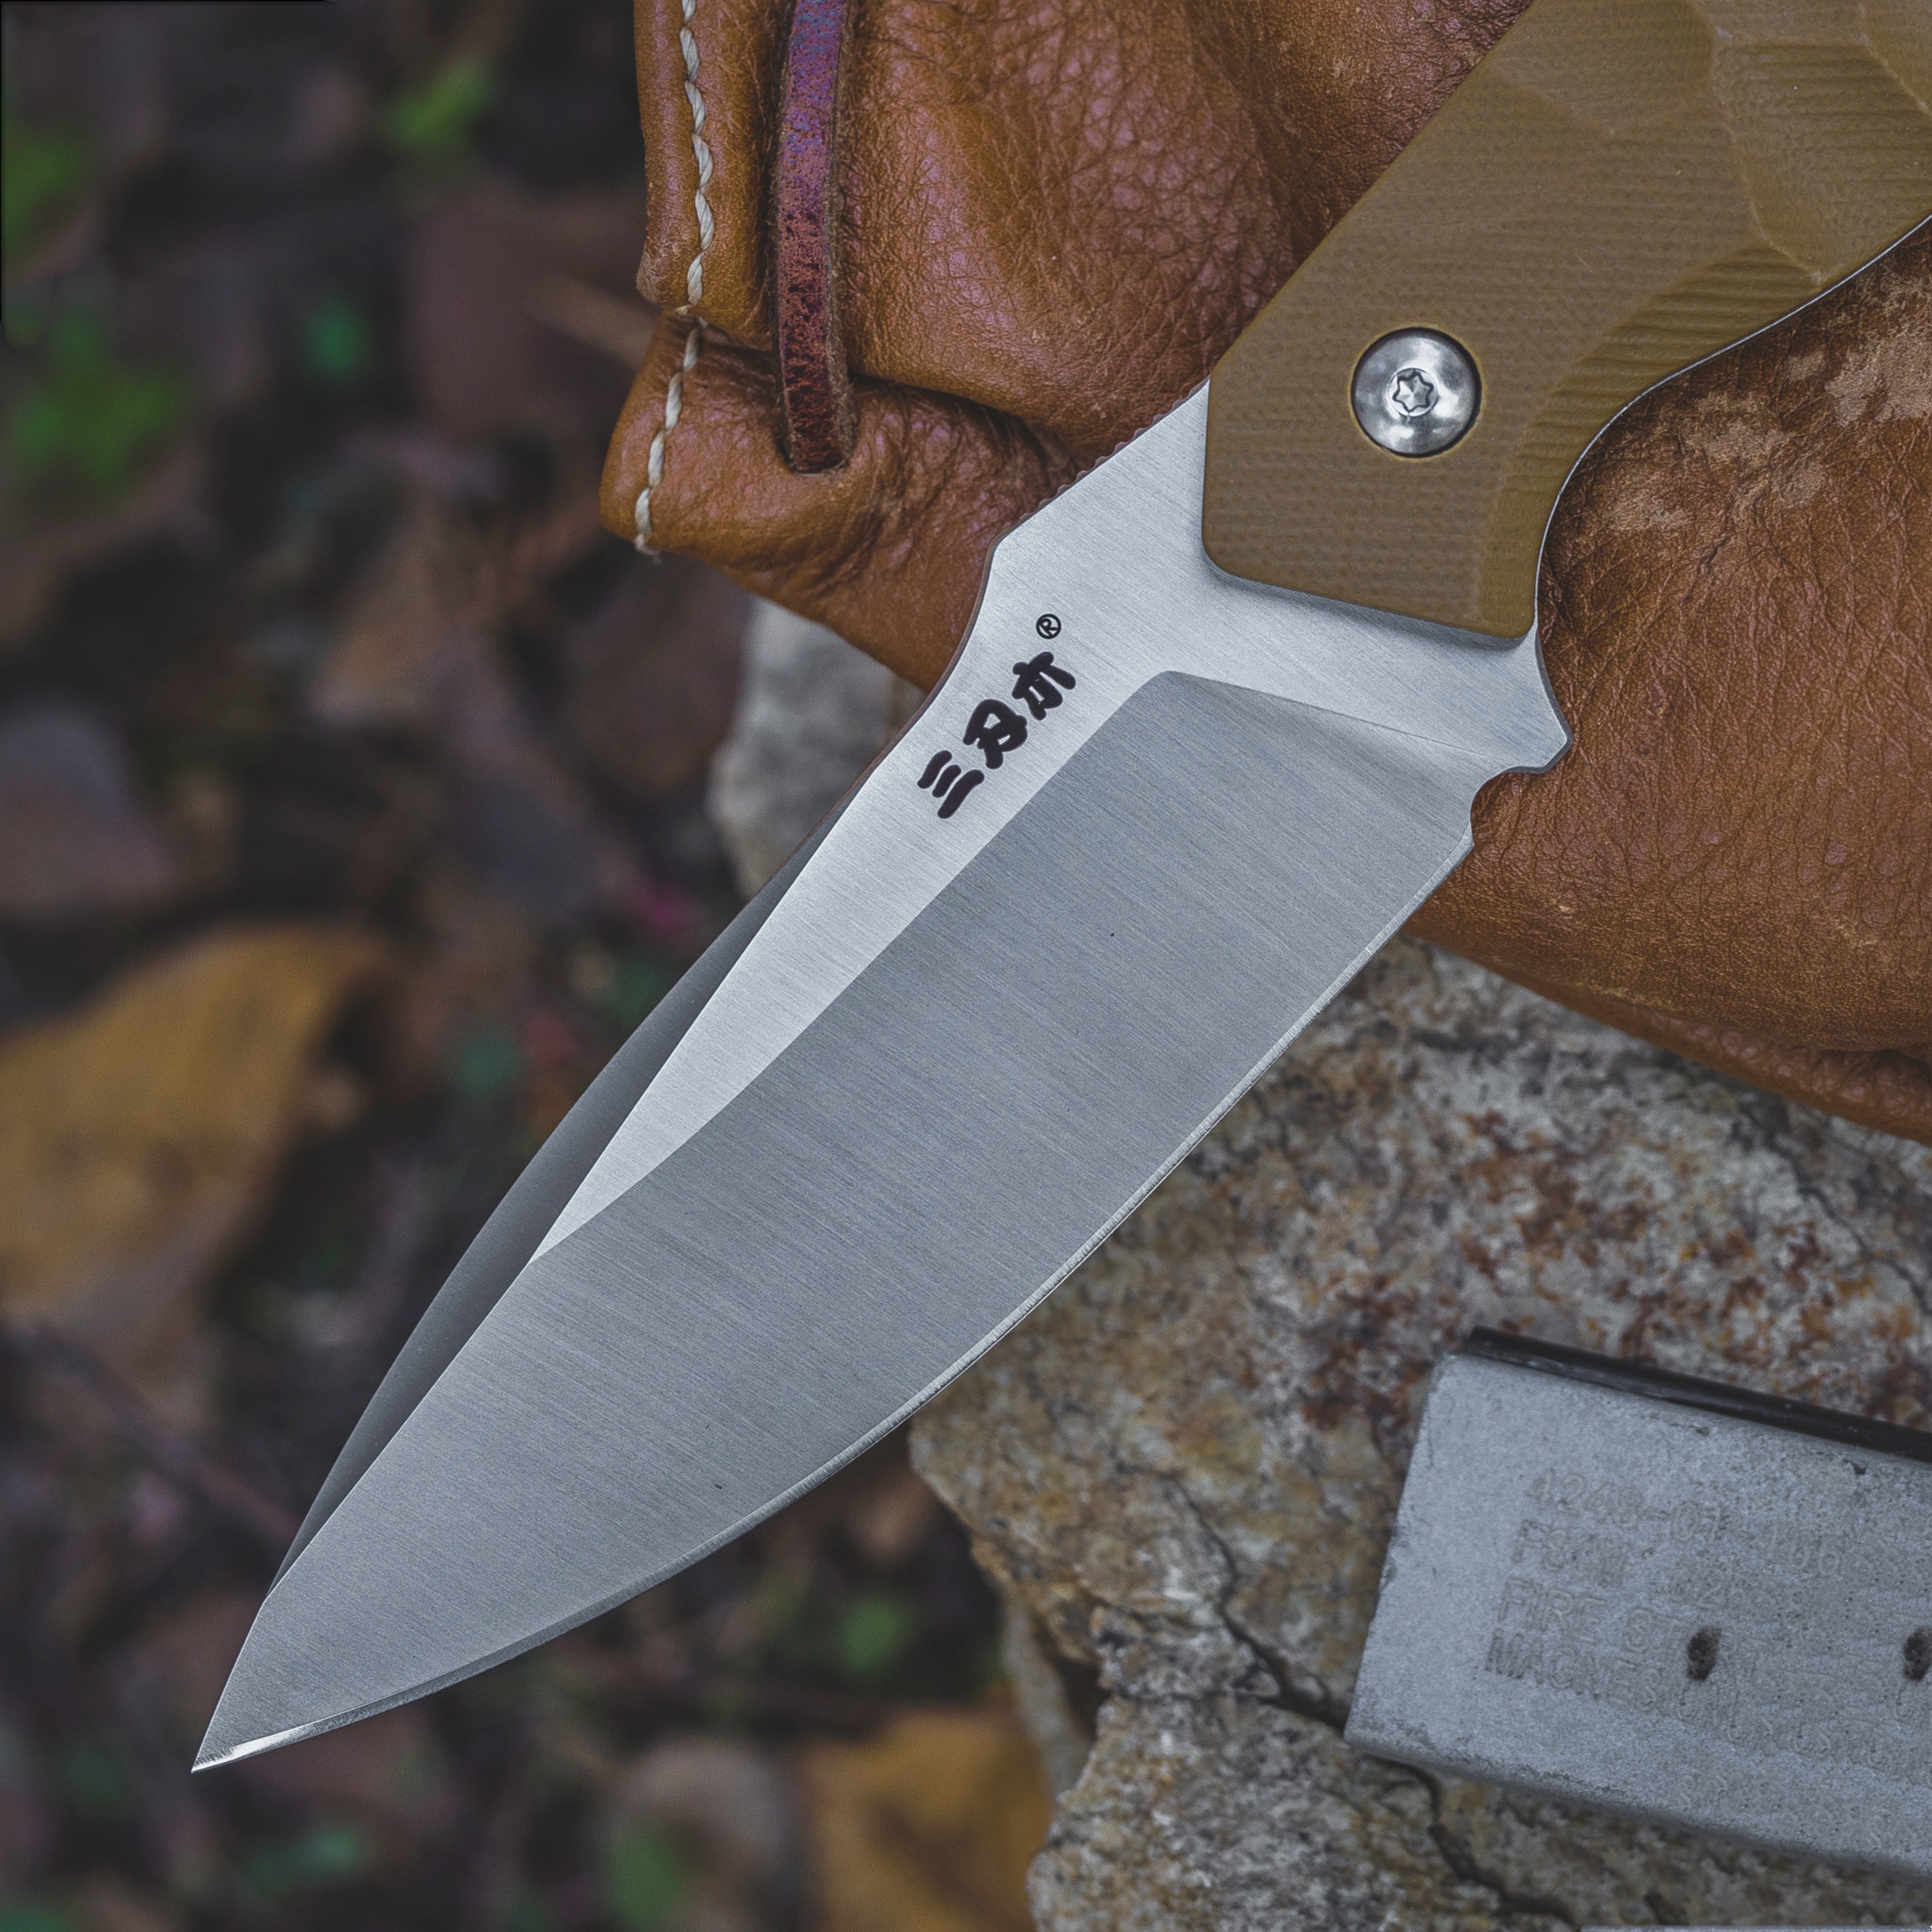 Tool Camping Sheath Survival Tactical 12C27 Hunting Blade Knife K CSGO  Sanrenmu EDC With Outdoor Utility S718 Knife Fixed Blade